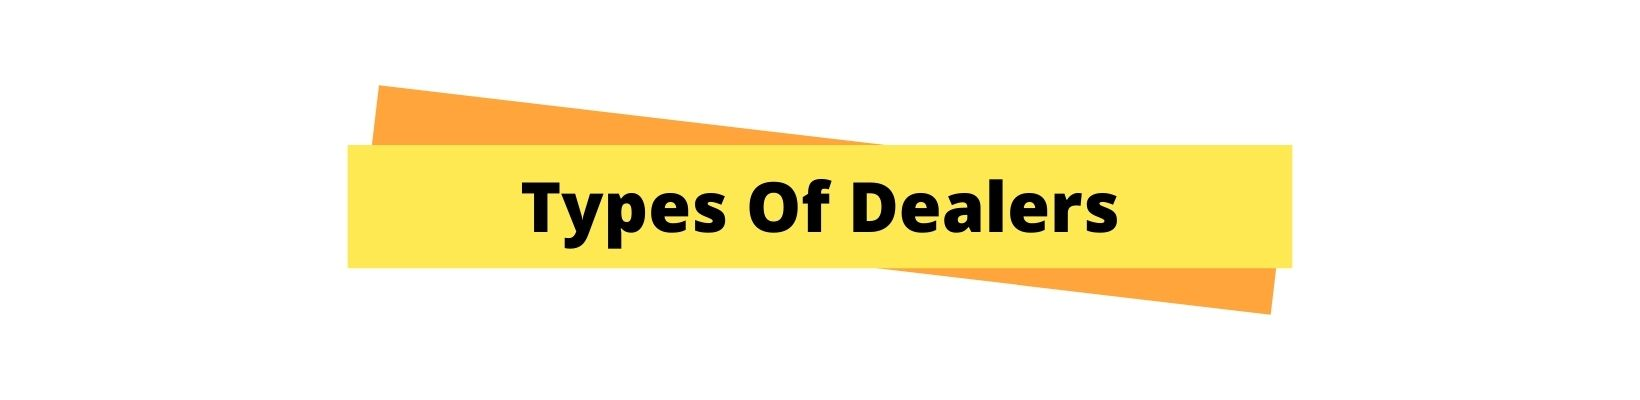 Types Of Dealers